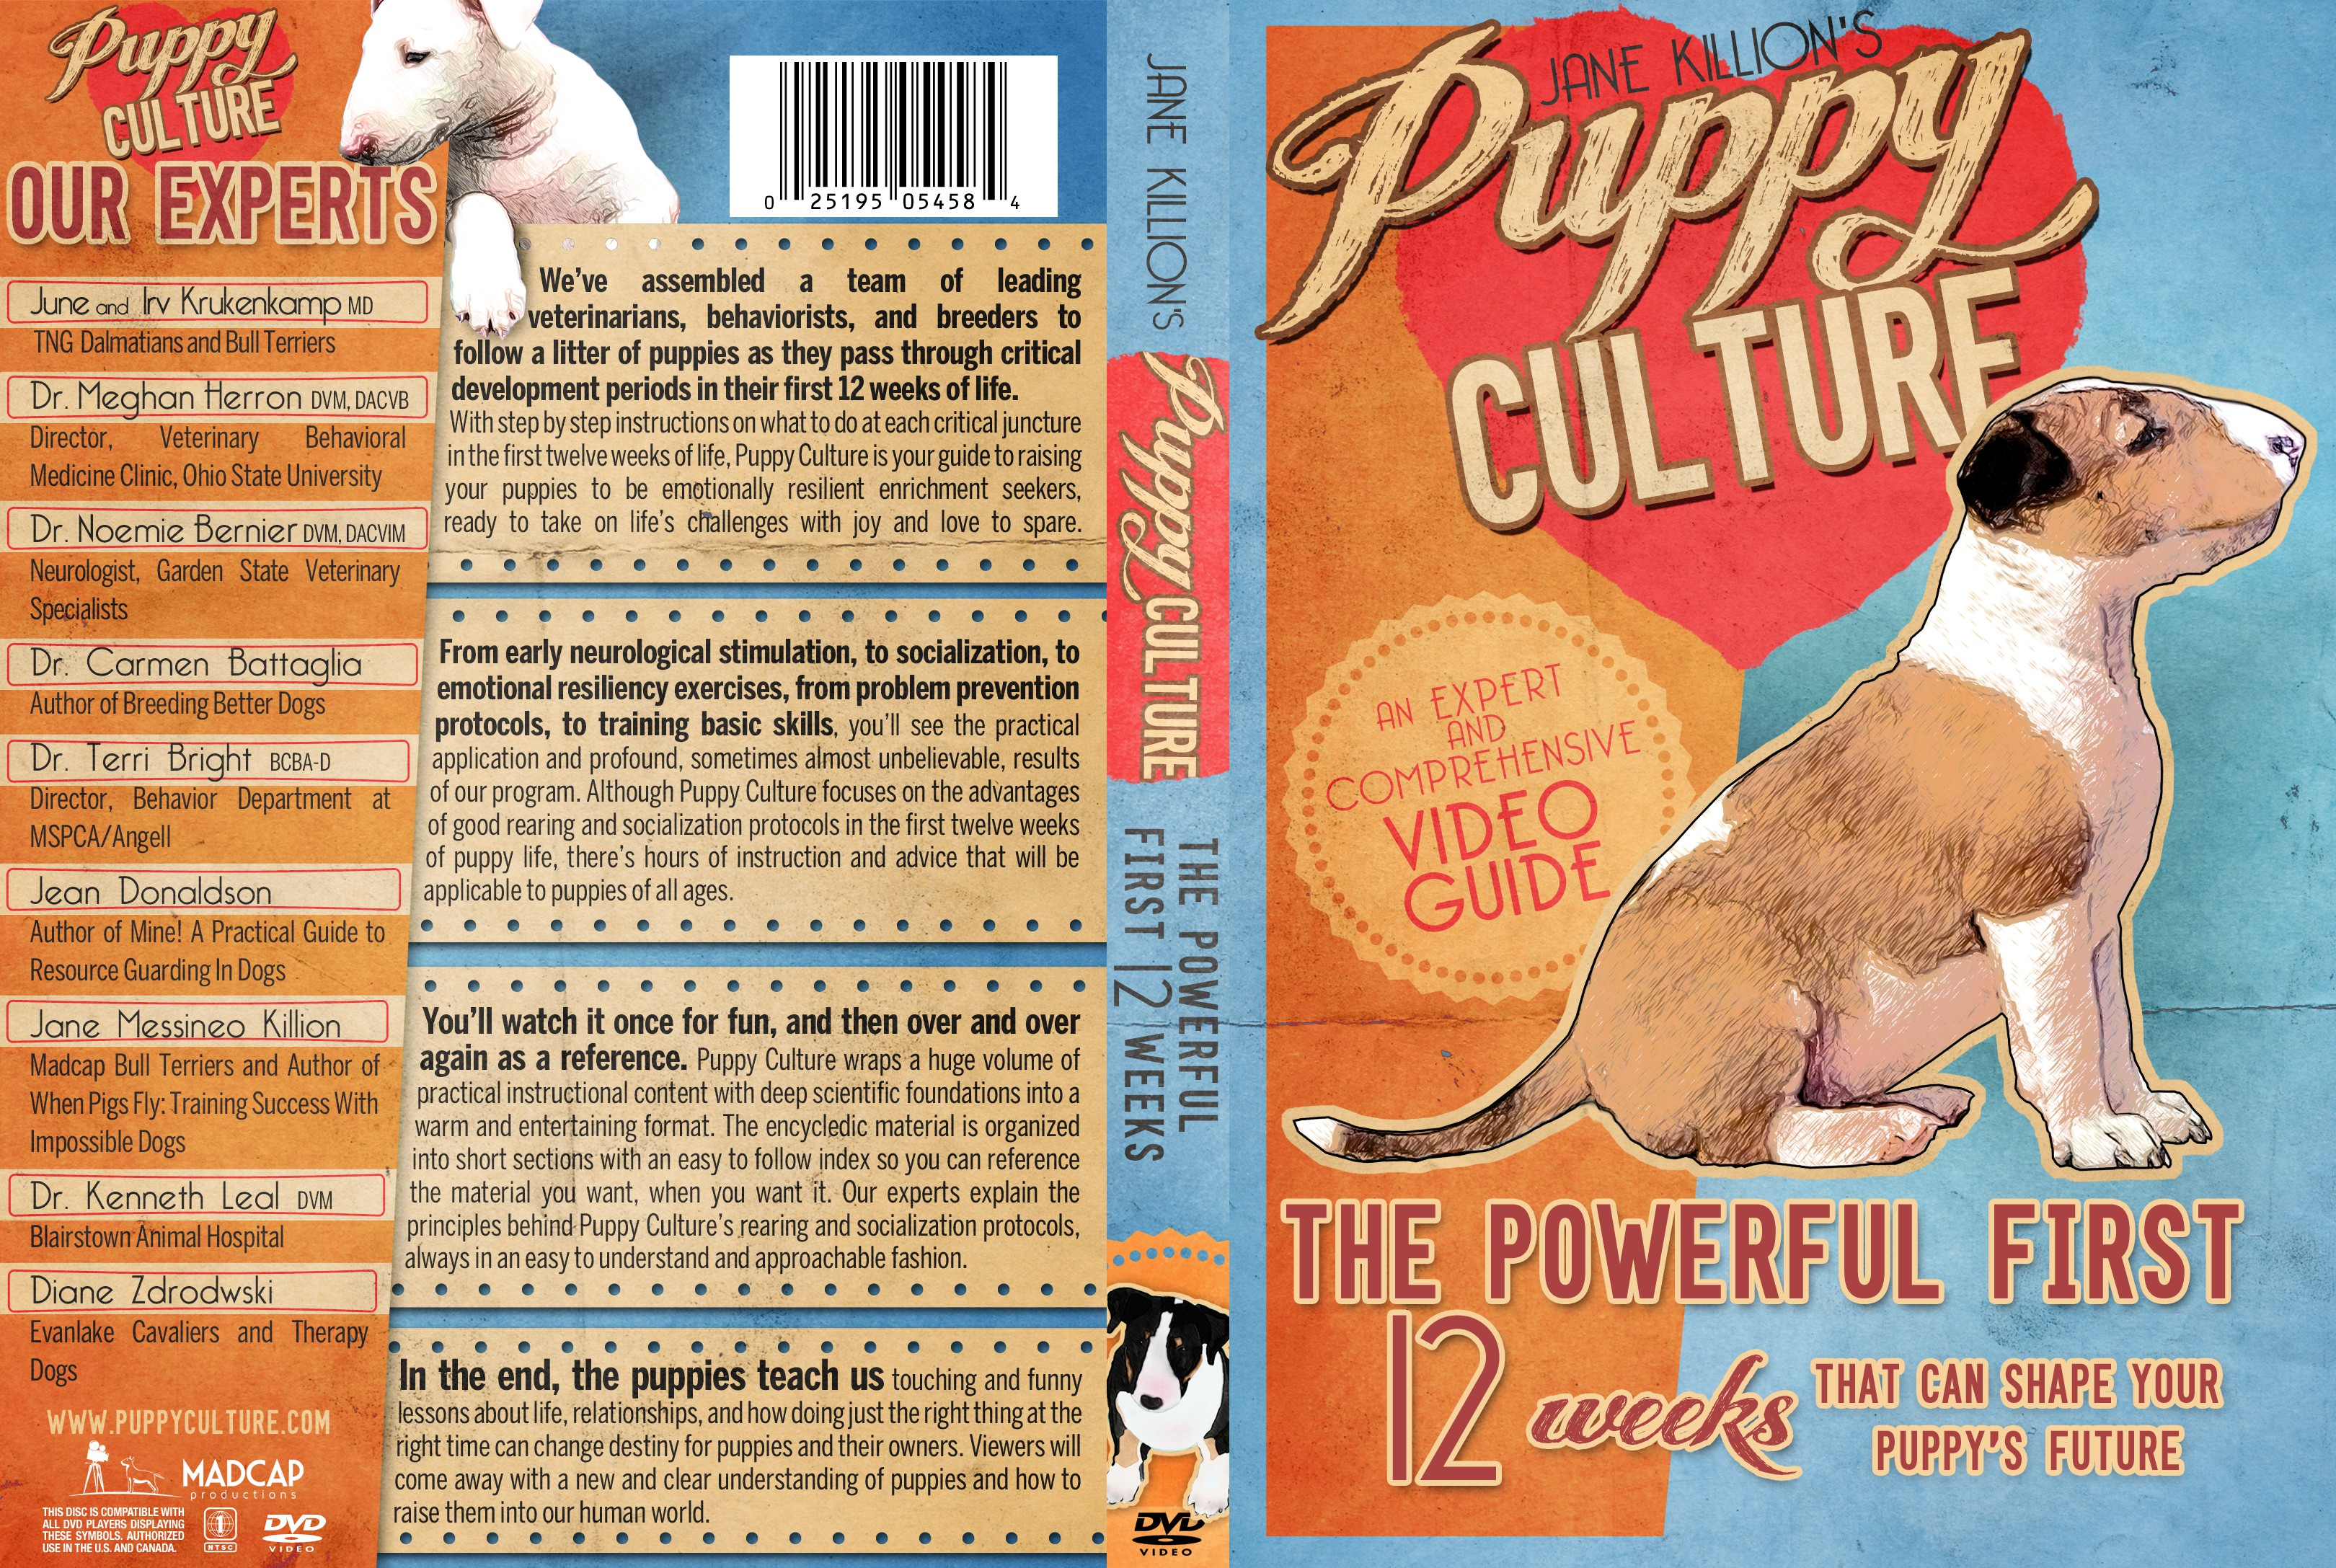 Create a DVD cover and label for our creative puppy rearing and socialization DVD!